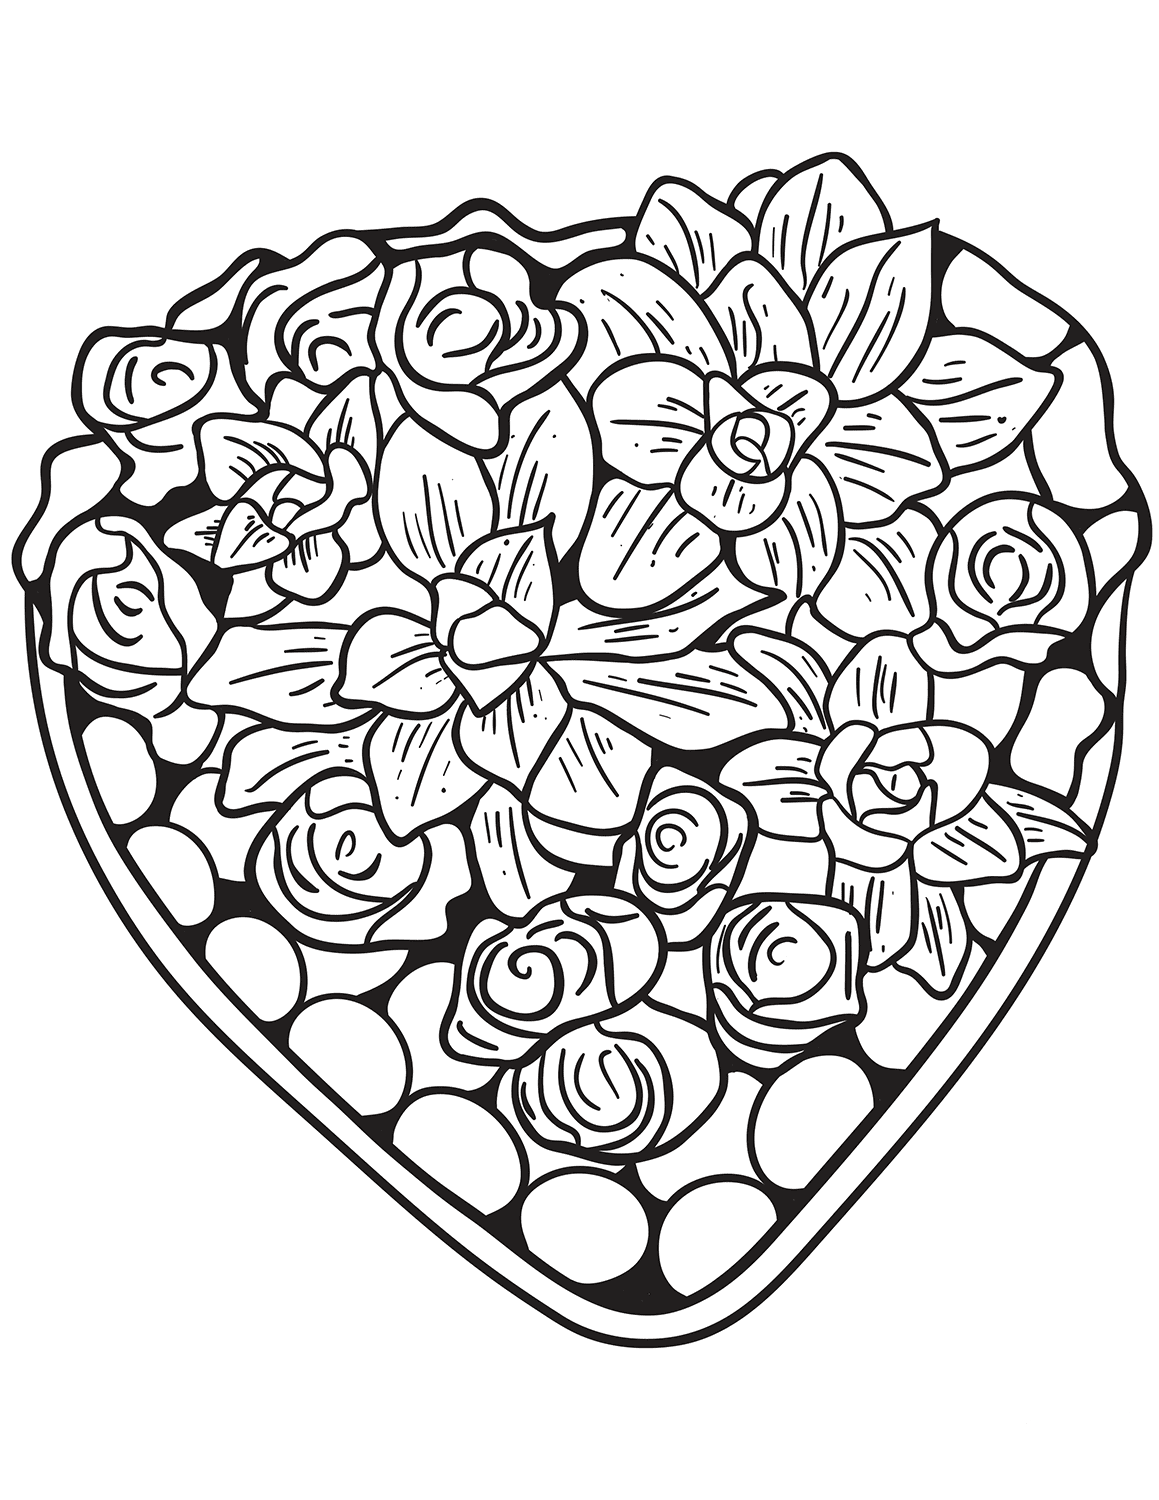 Candid image with regard to printable hearts to color